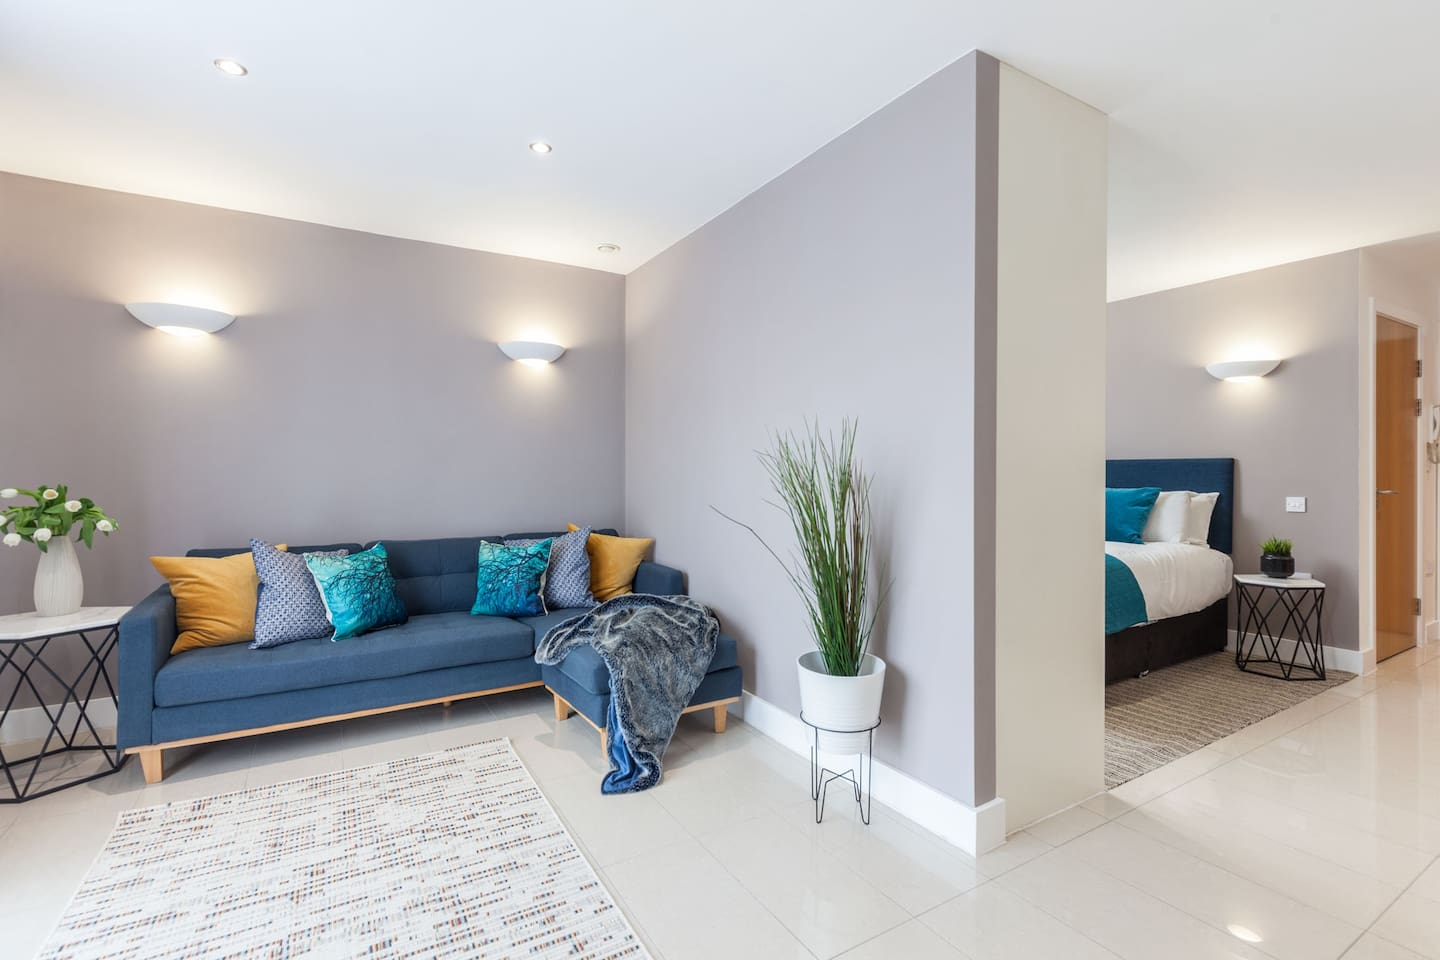 Studio Lounge Area showing divide to bedroom area